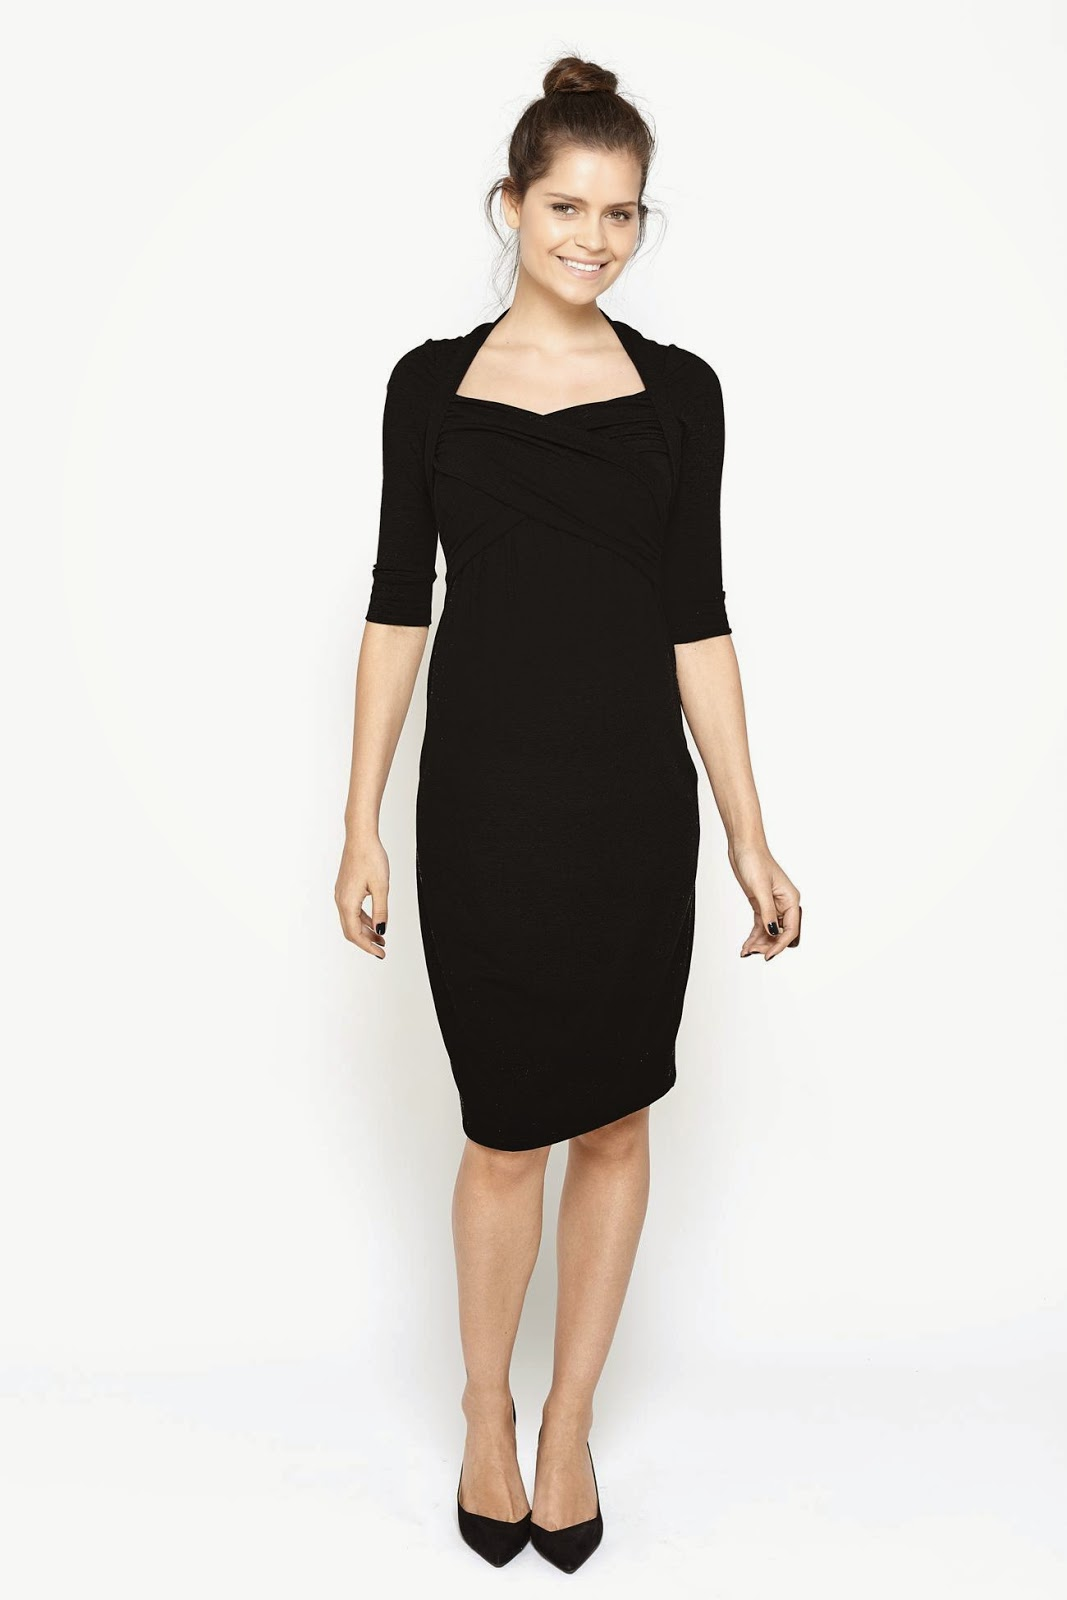 Mode sty a bump in the night black maternity dresses modest black maternity dress with sleeves follow mode sty for stylish modest clothing ombrellifo Gallery